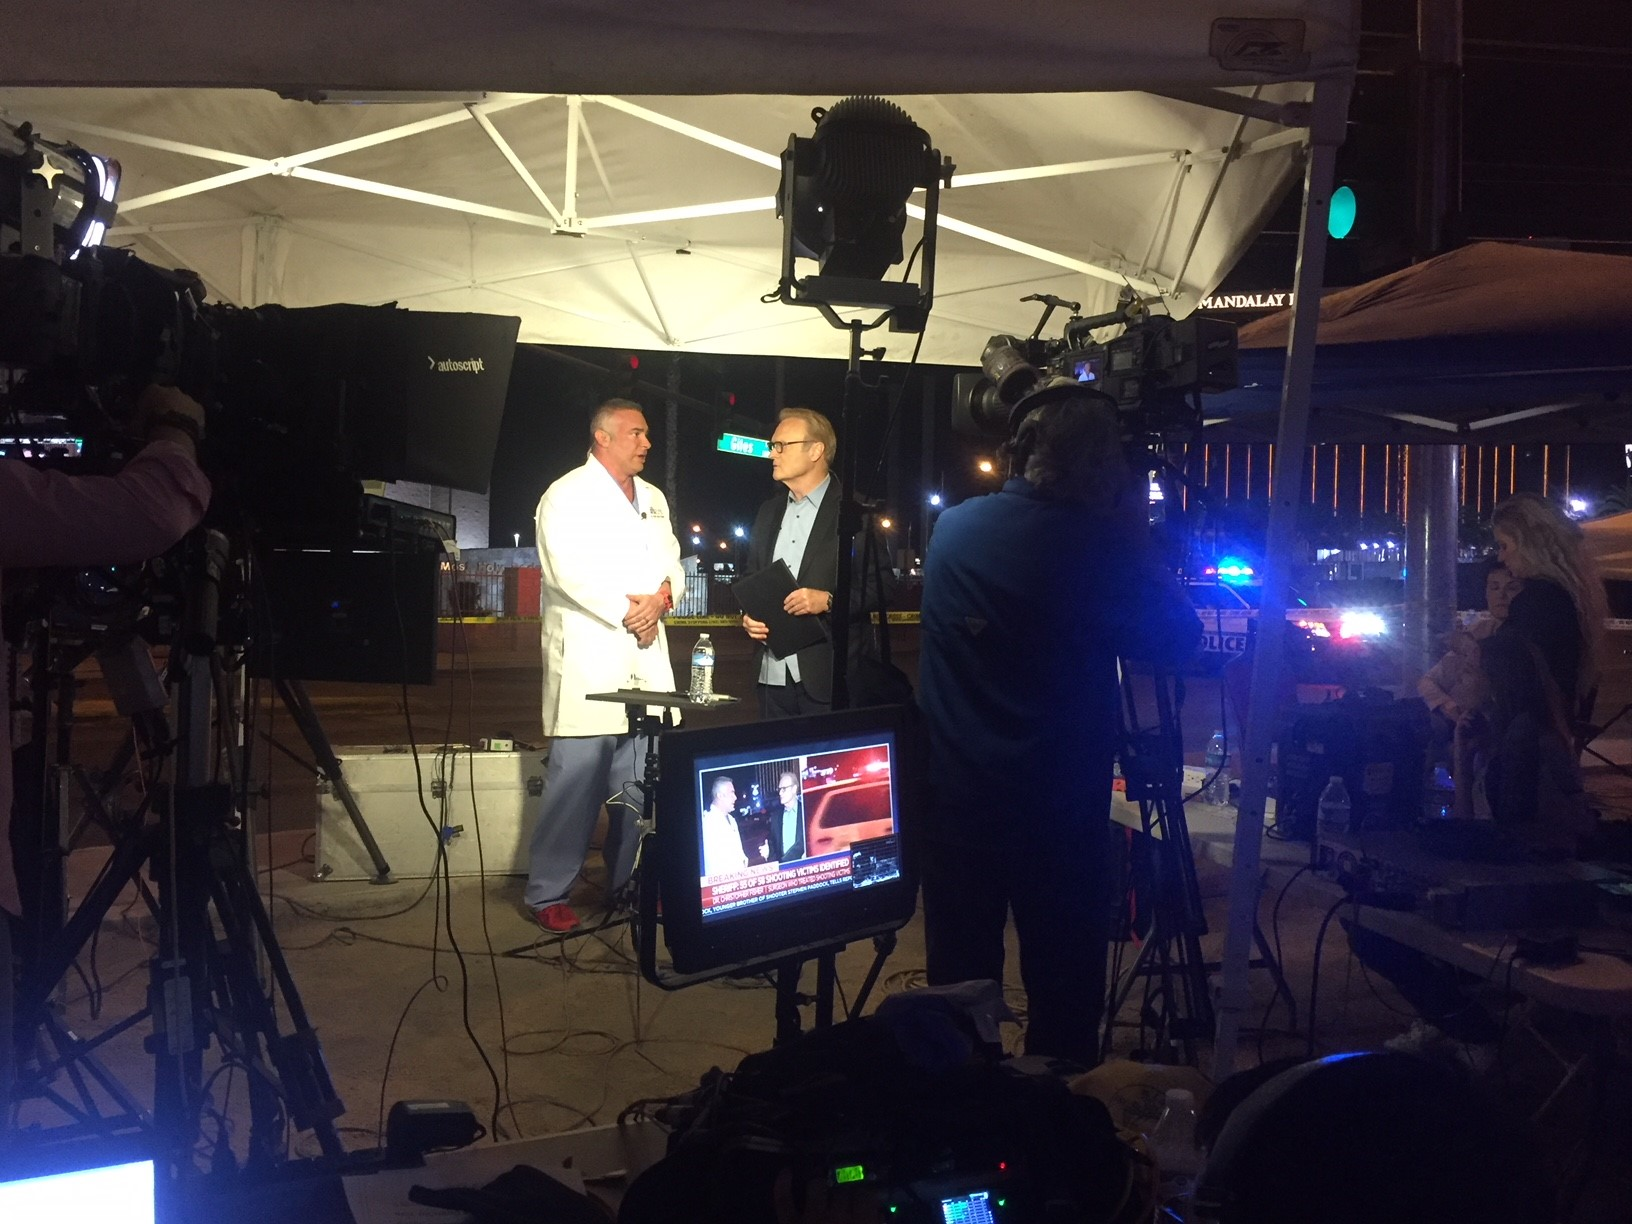 Male doctor being interviewed by male TV show host in front of camera crew